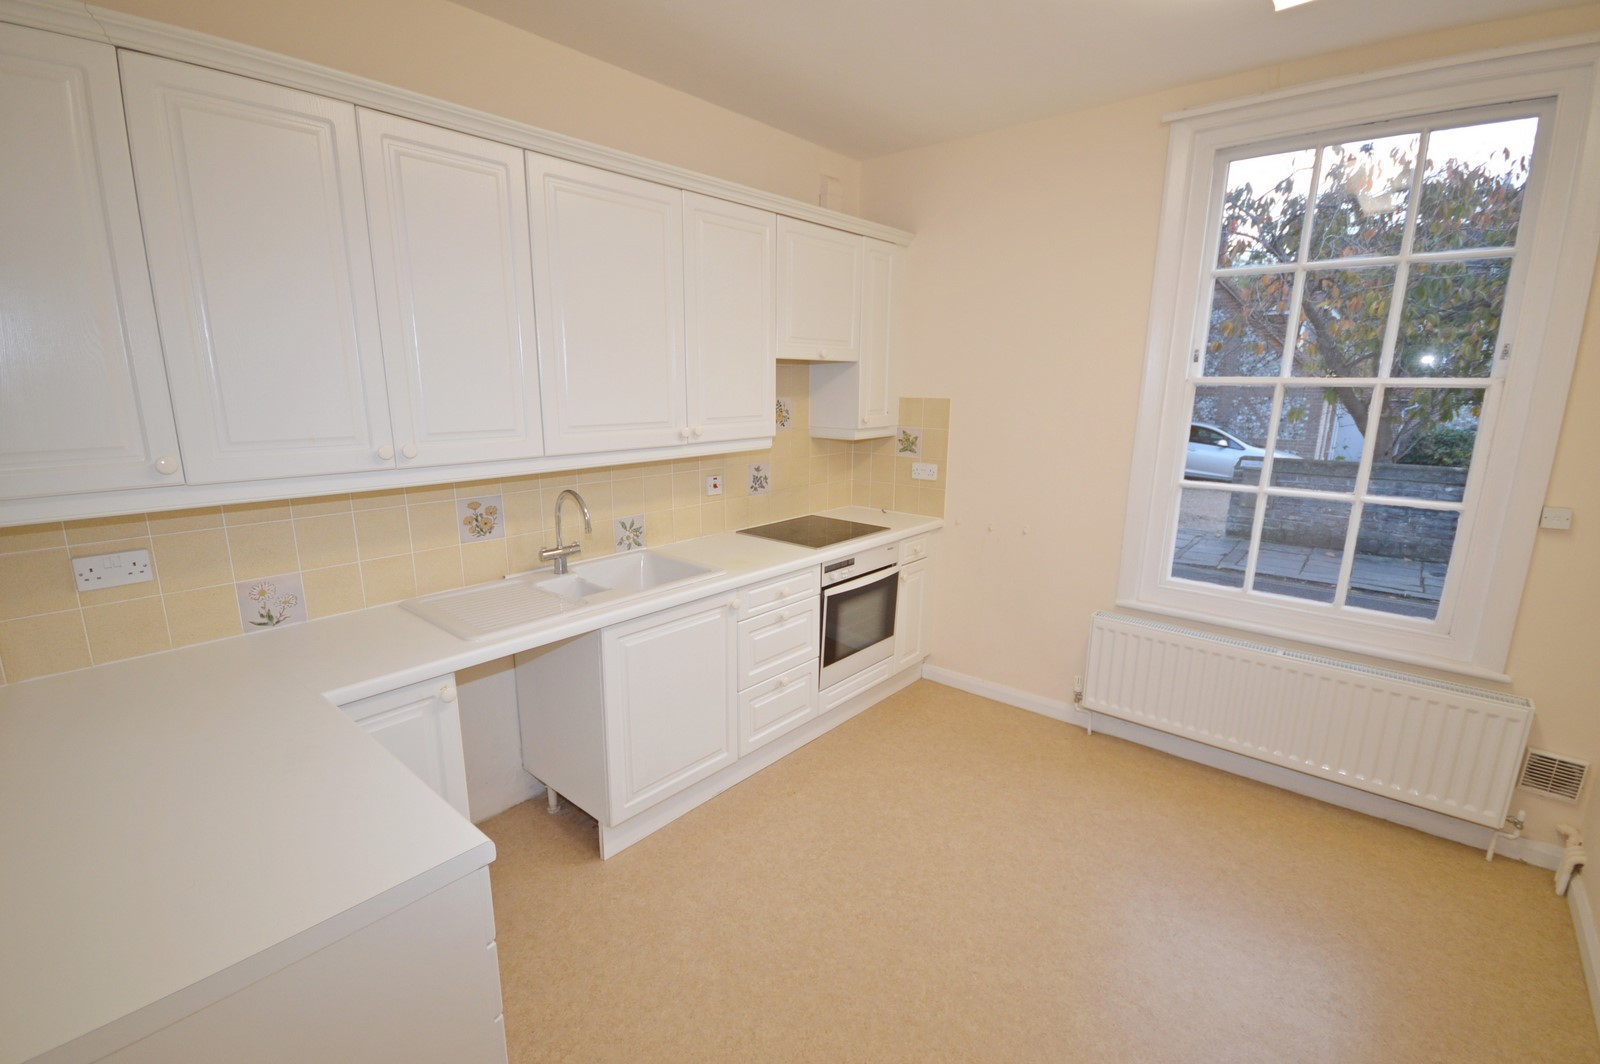 Kitchen House to rent in Chichester City Centre